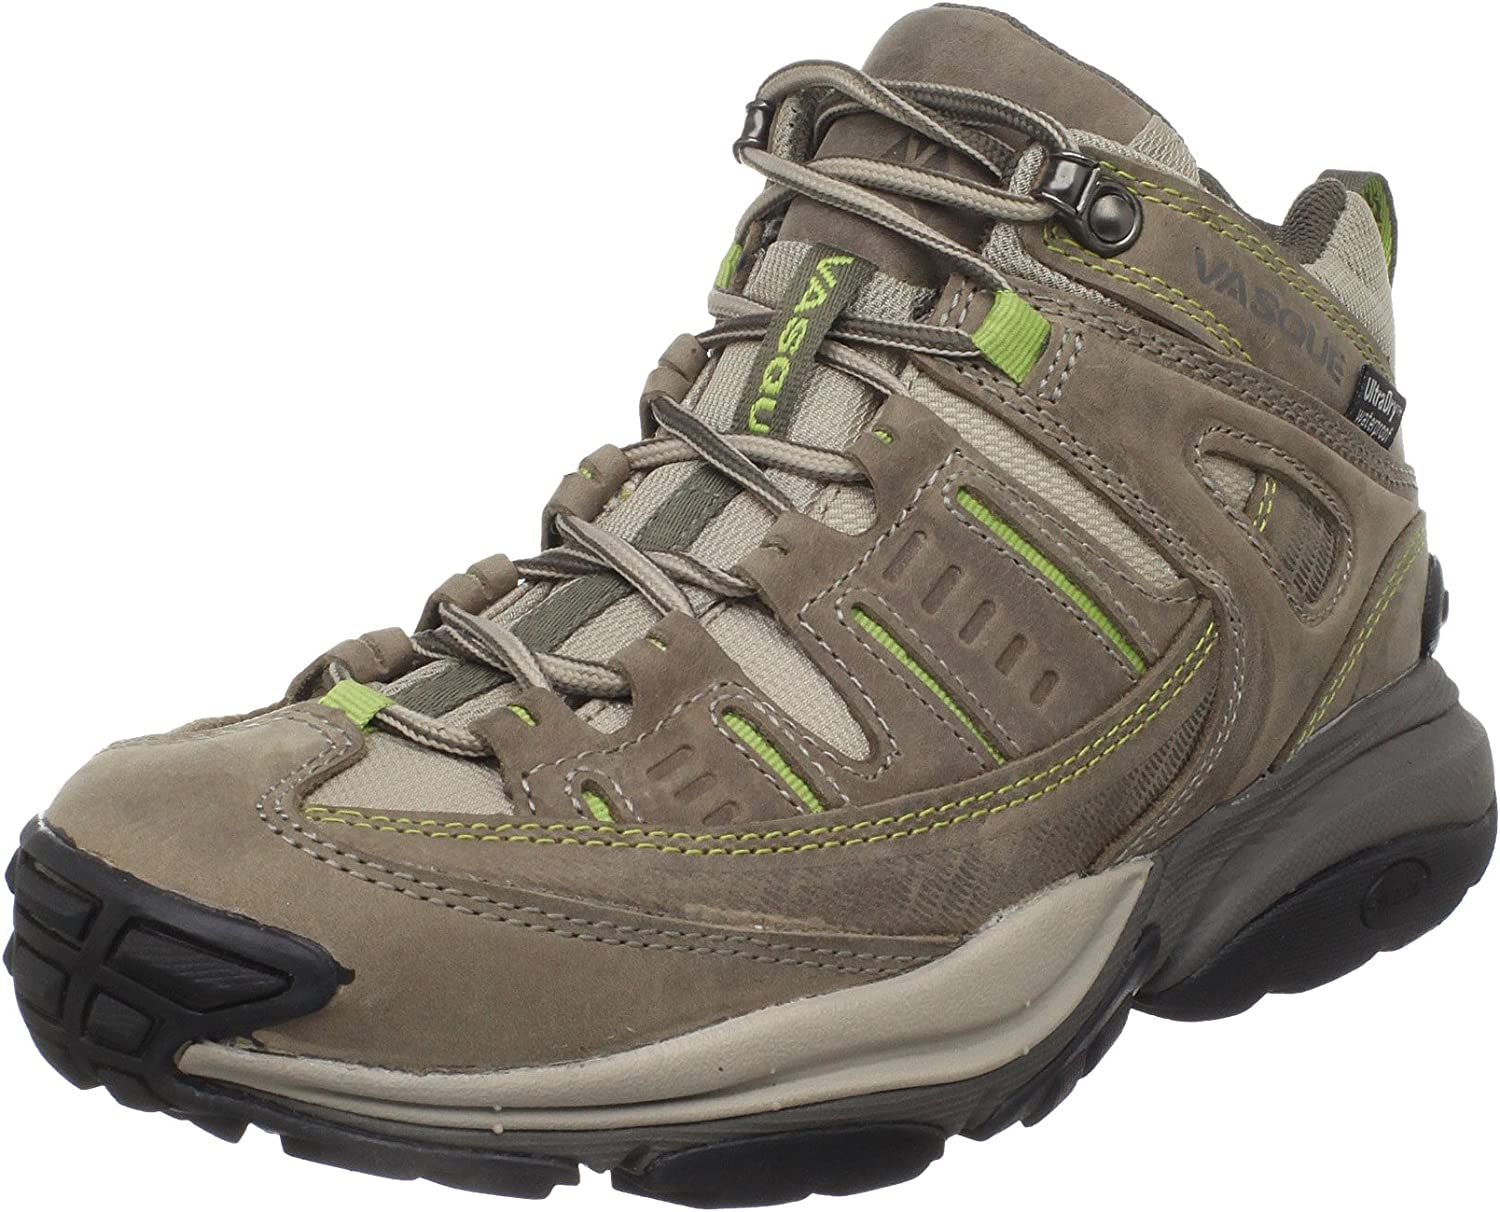 Vasque Women's Scree Mid Hiking shoes